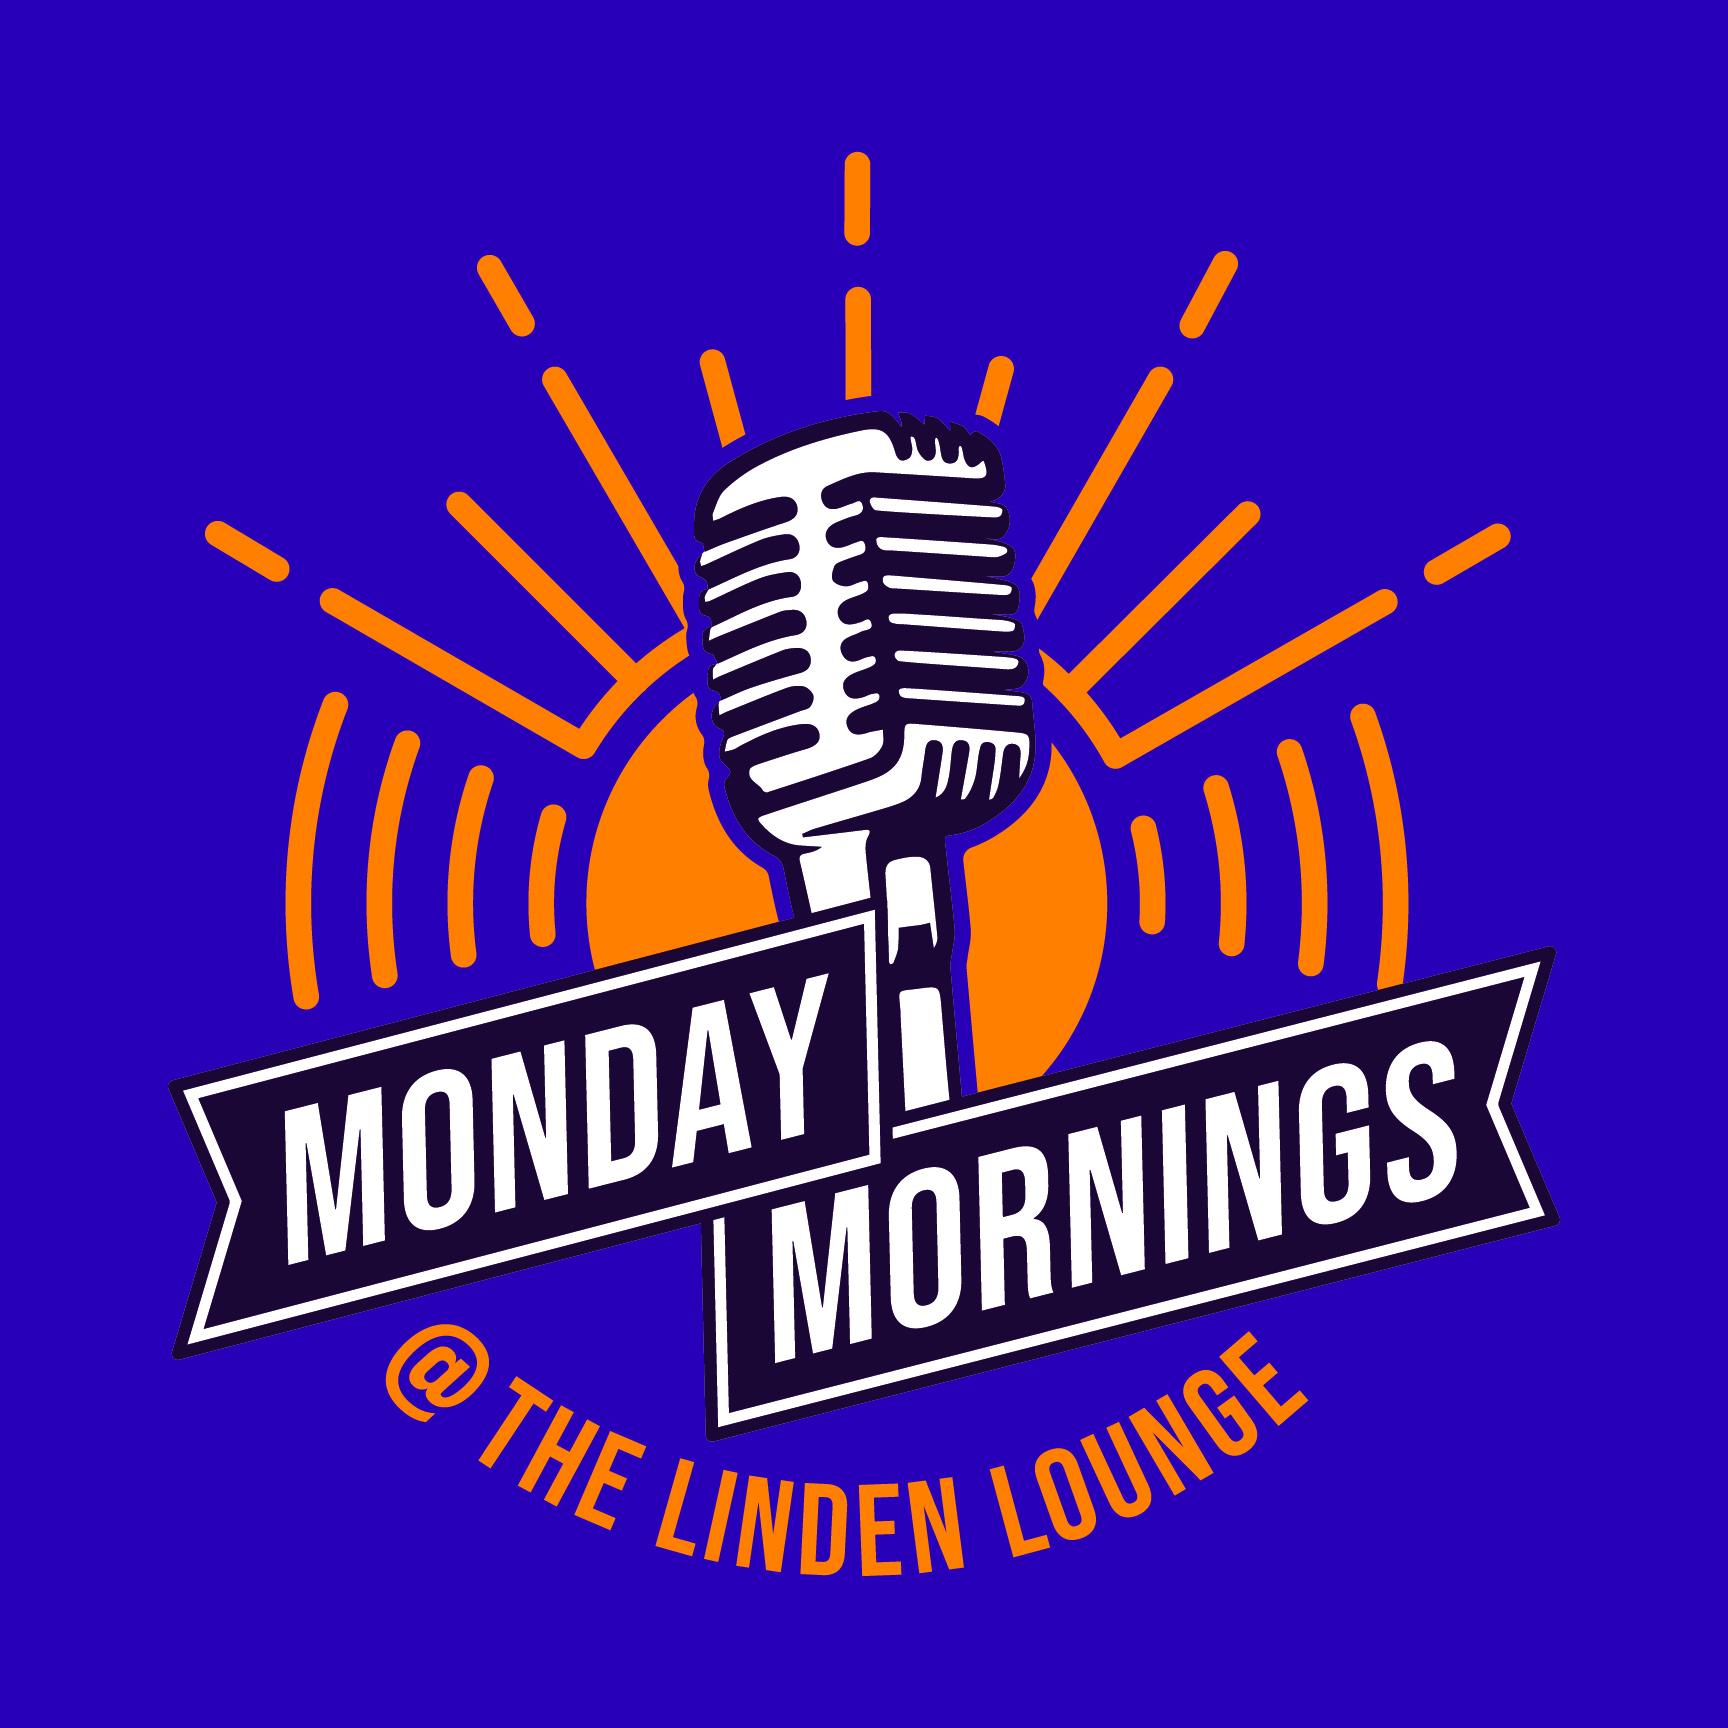 Monday Mornings at The Linden Lounge